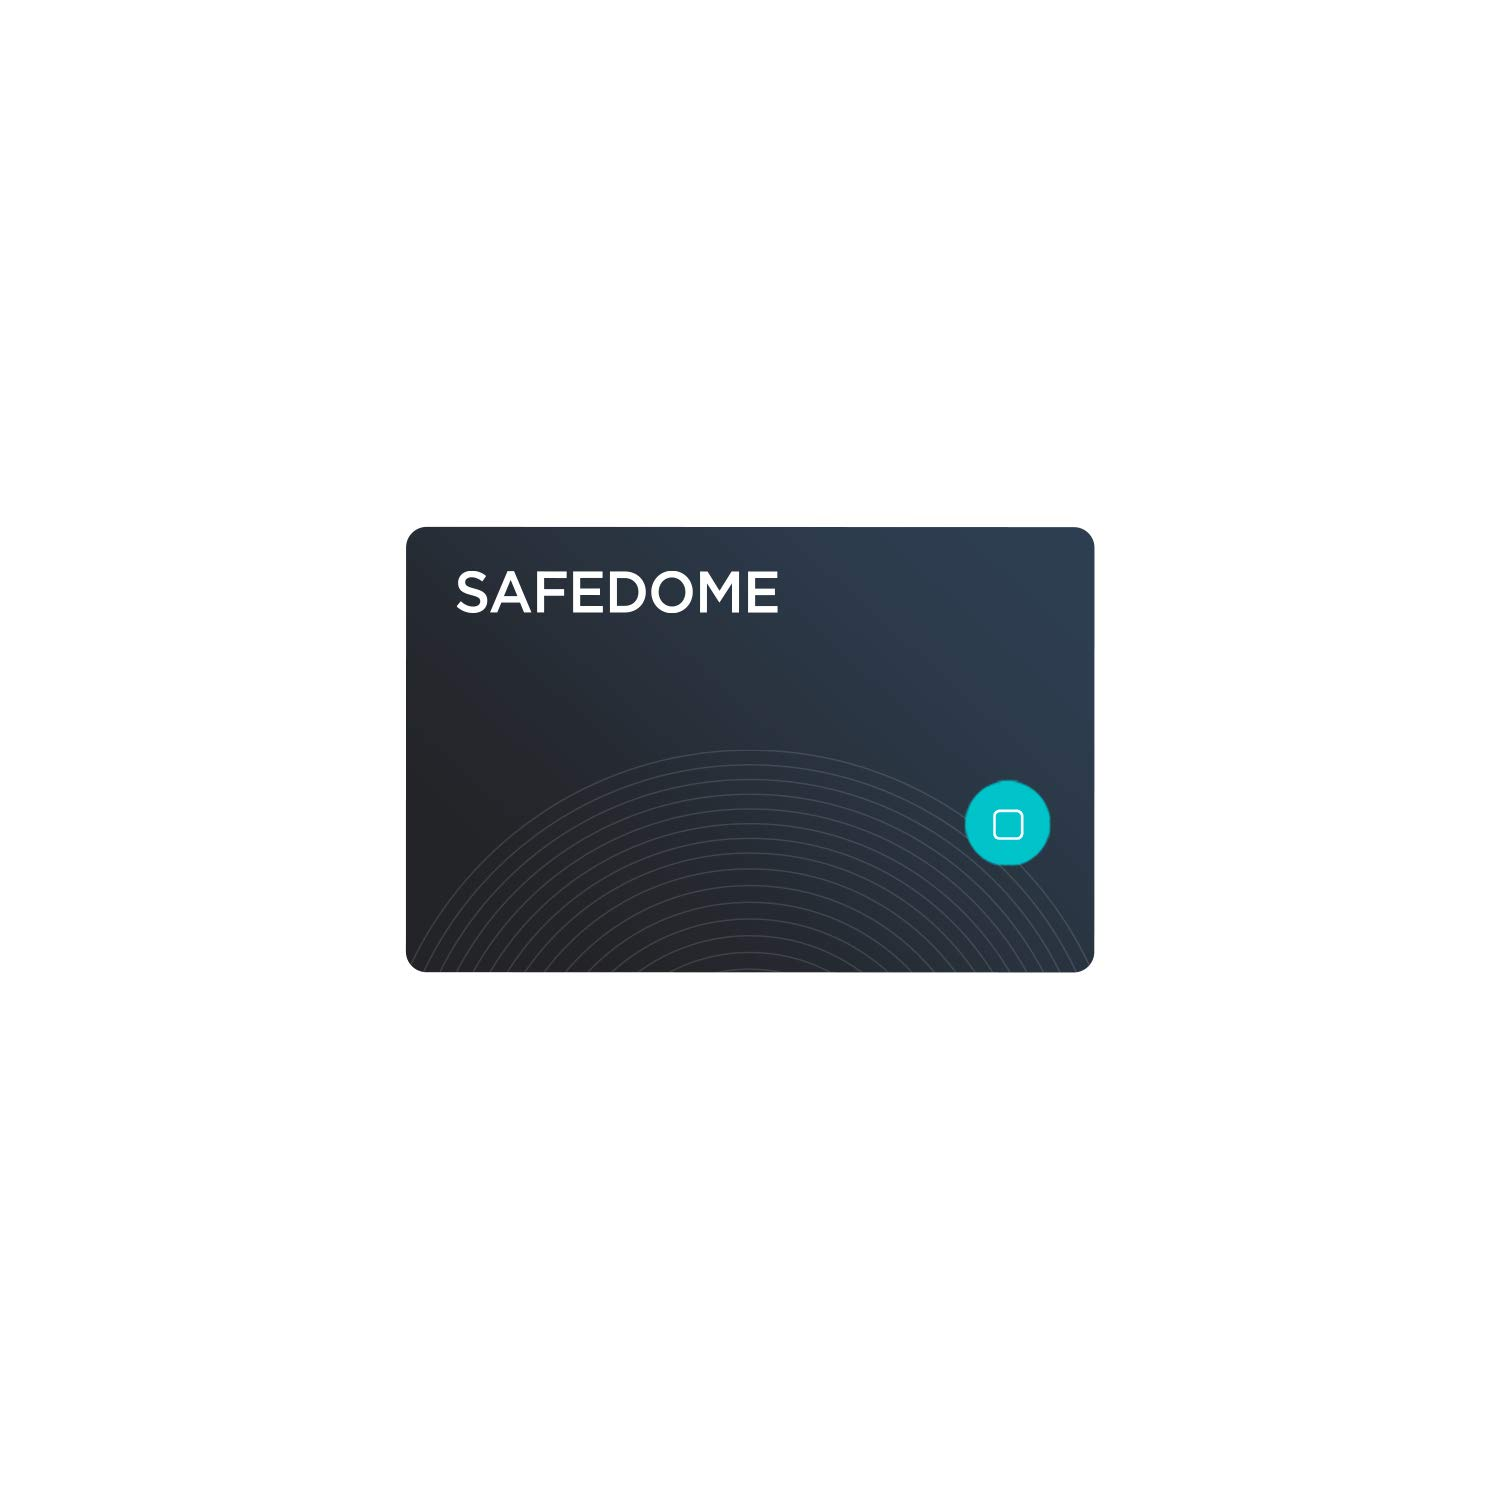 Safedome Recharge Bluetooth Lost Item Tracking Card, Item Finder with GPS-Like Tracking, Slim Water-Resistant Bluetooth Finder for Lost Phone, Wallet, Passport, or Bag, Free Companion App by Safedome